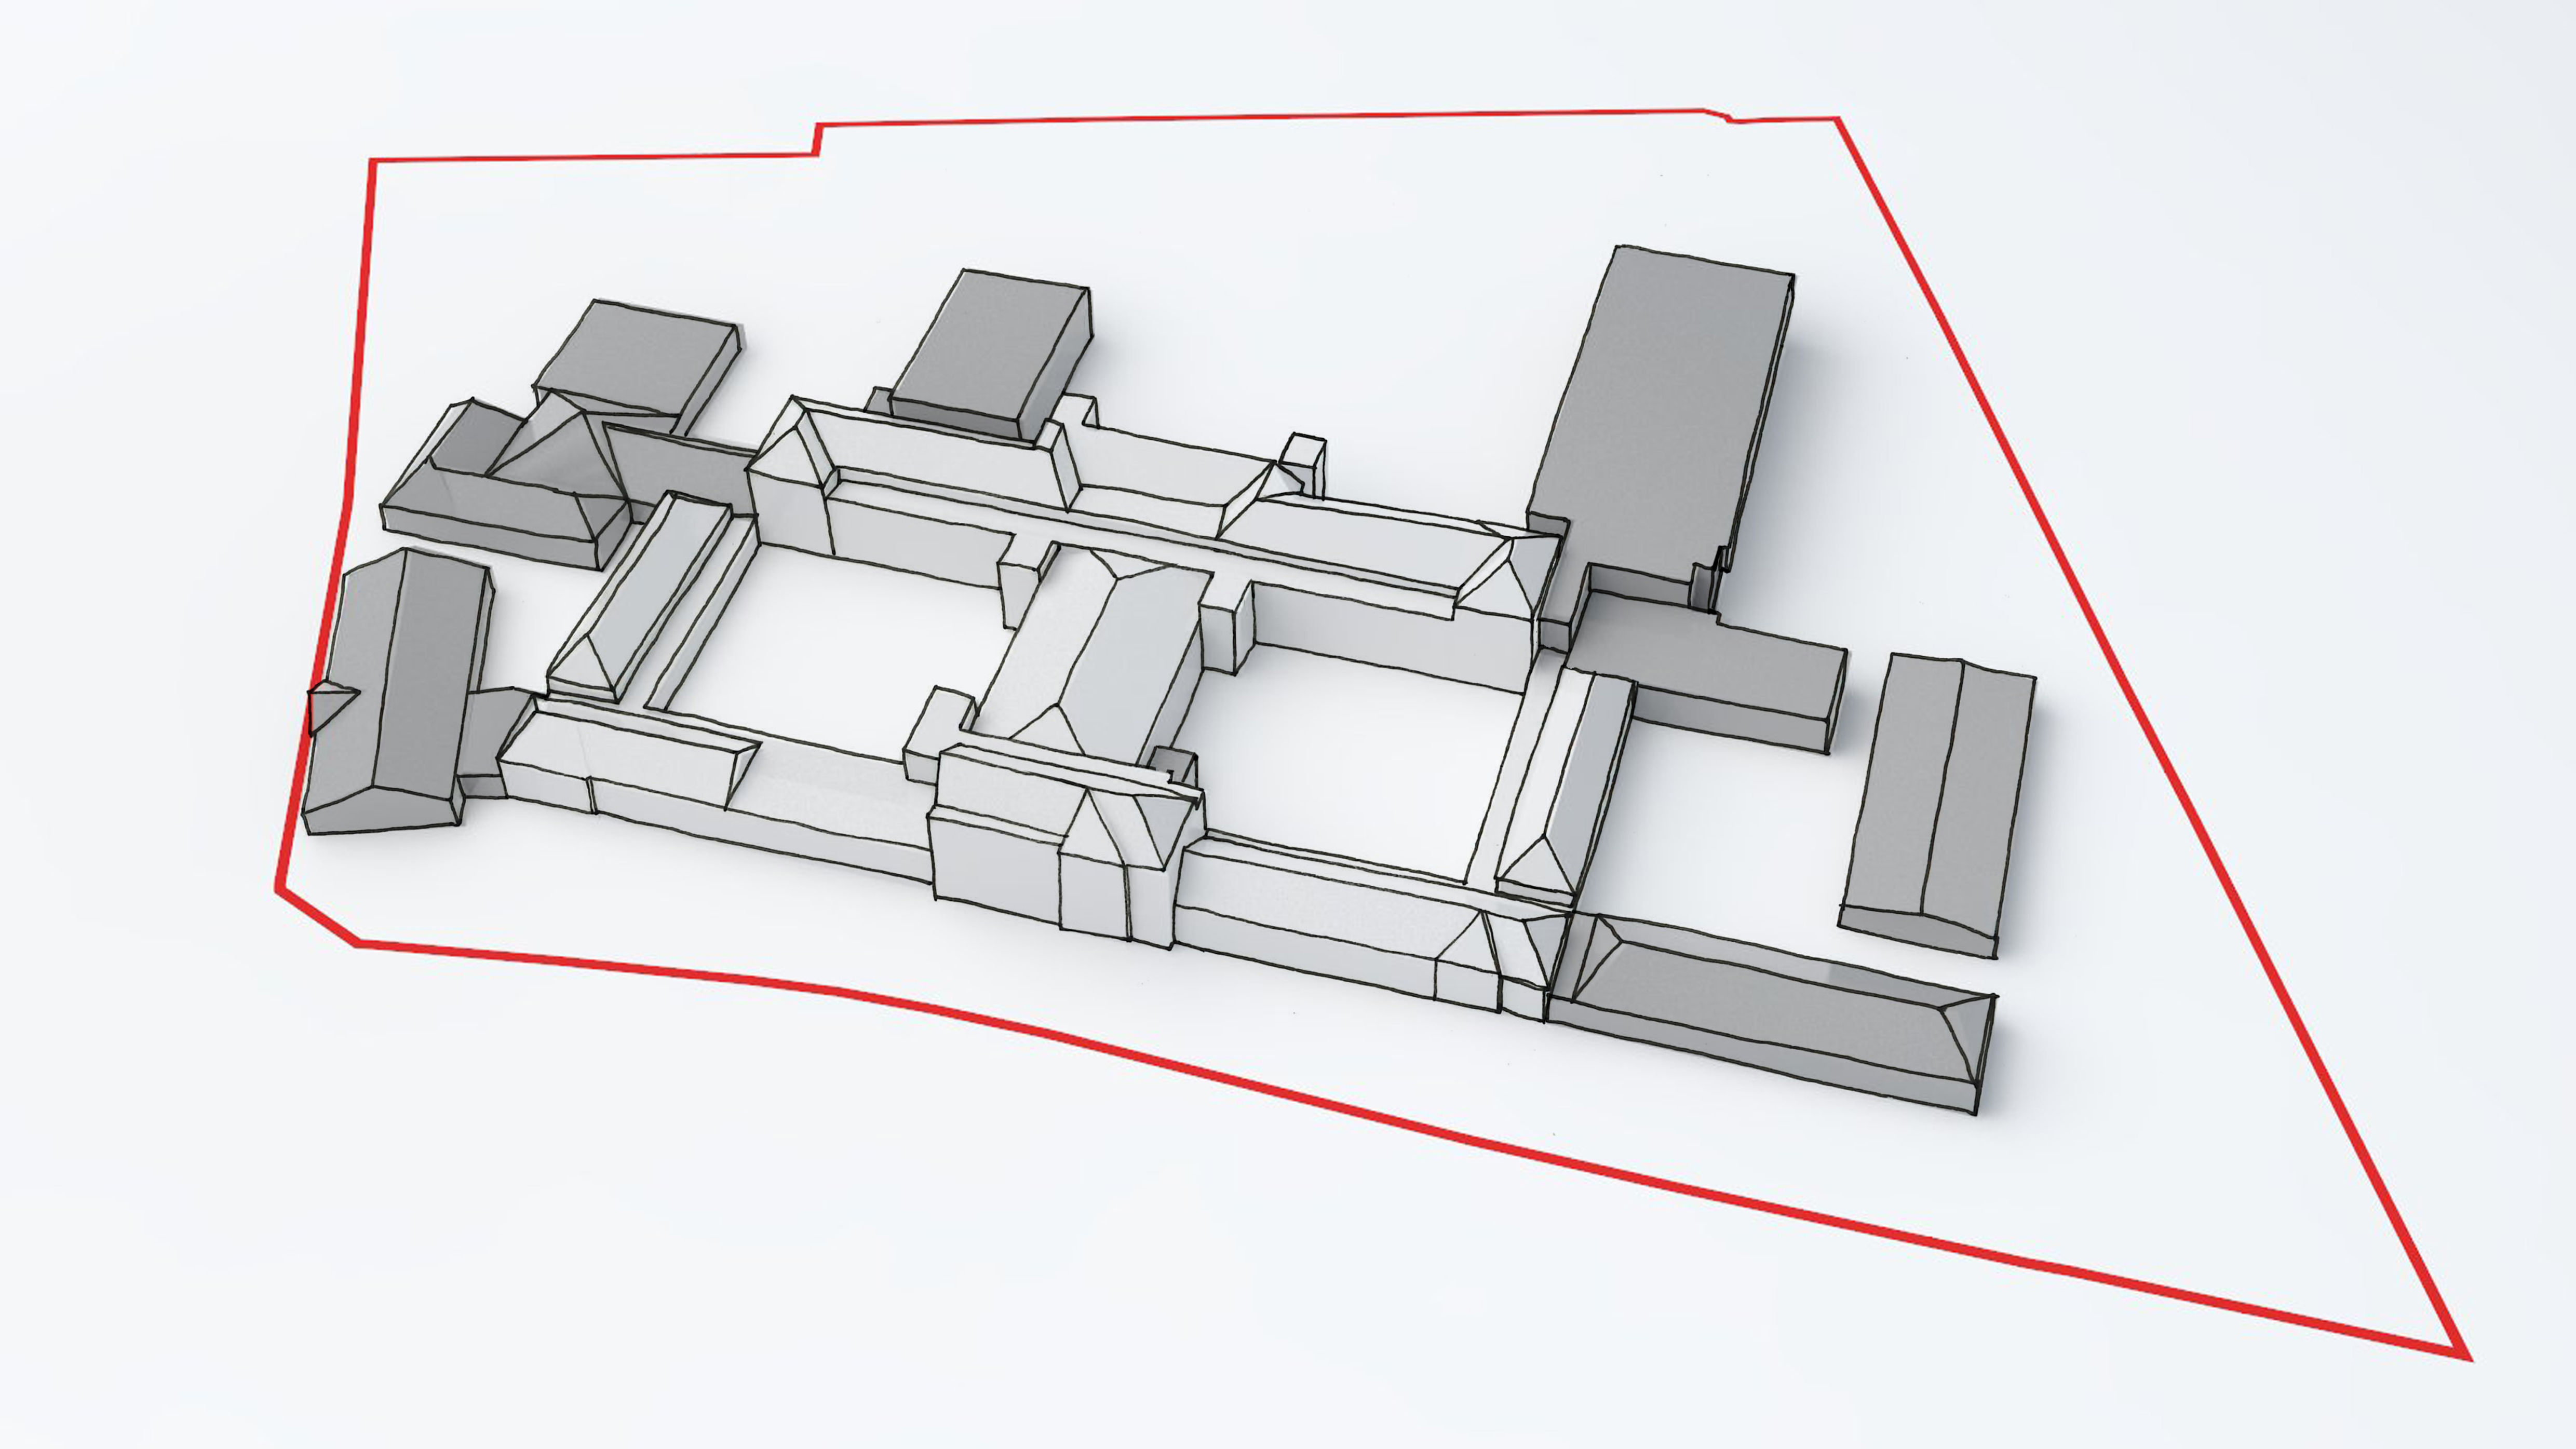 additions diagram - Saltley Secondary School by marks Barfield Architects